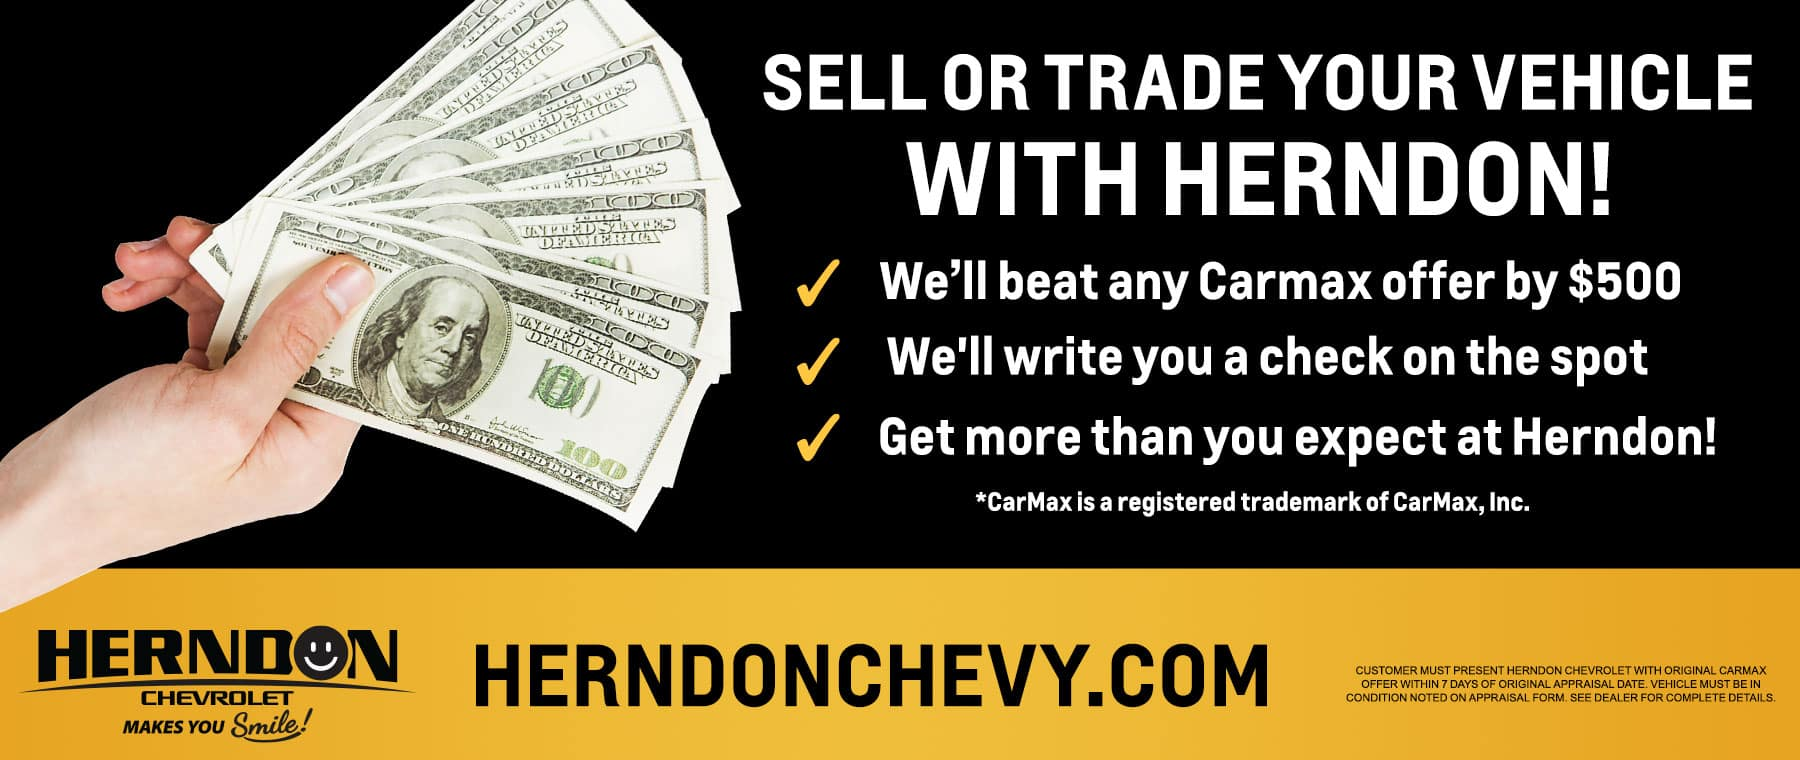 Sell or Trade Your Vehicle With Herndon Chevrolet